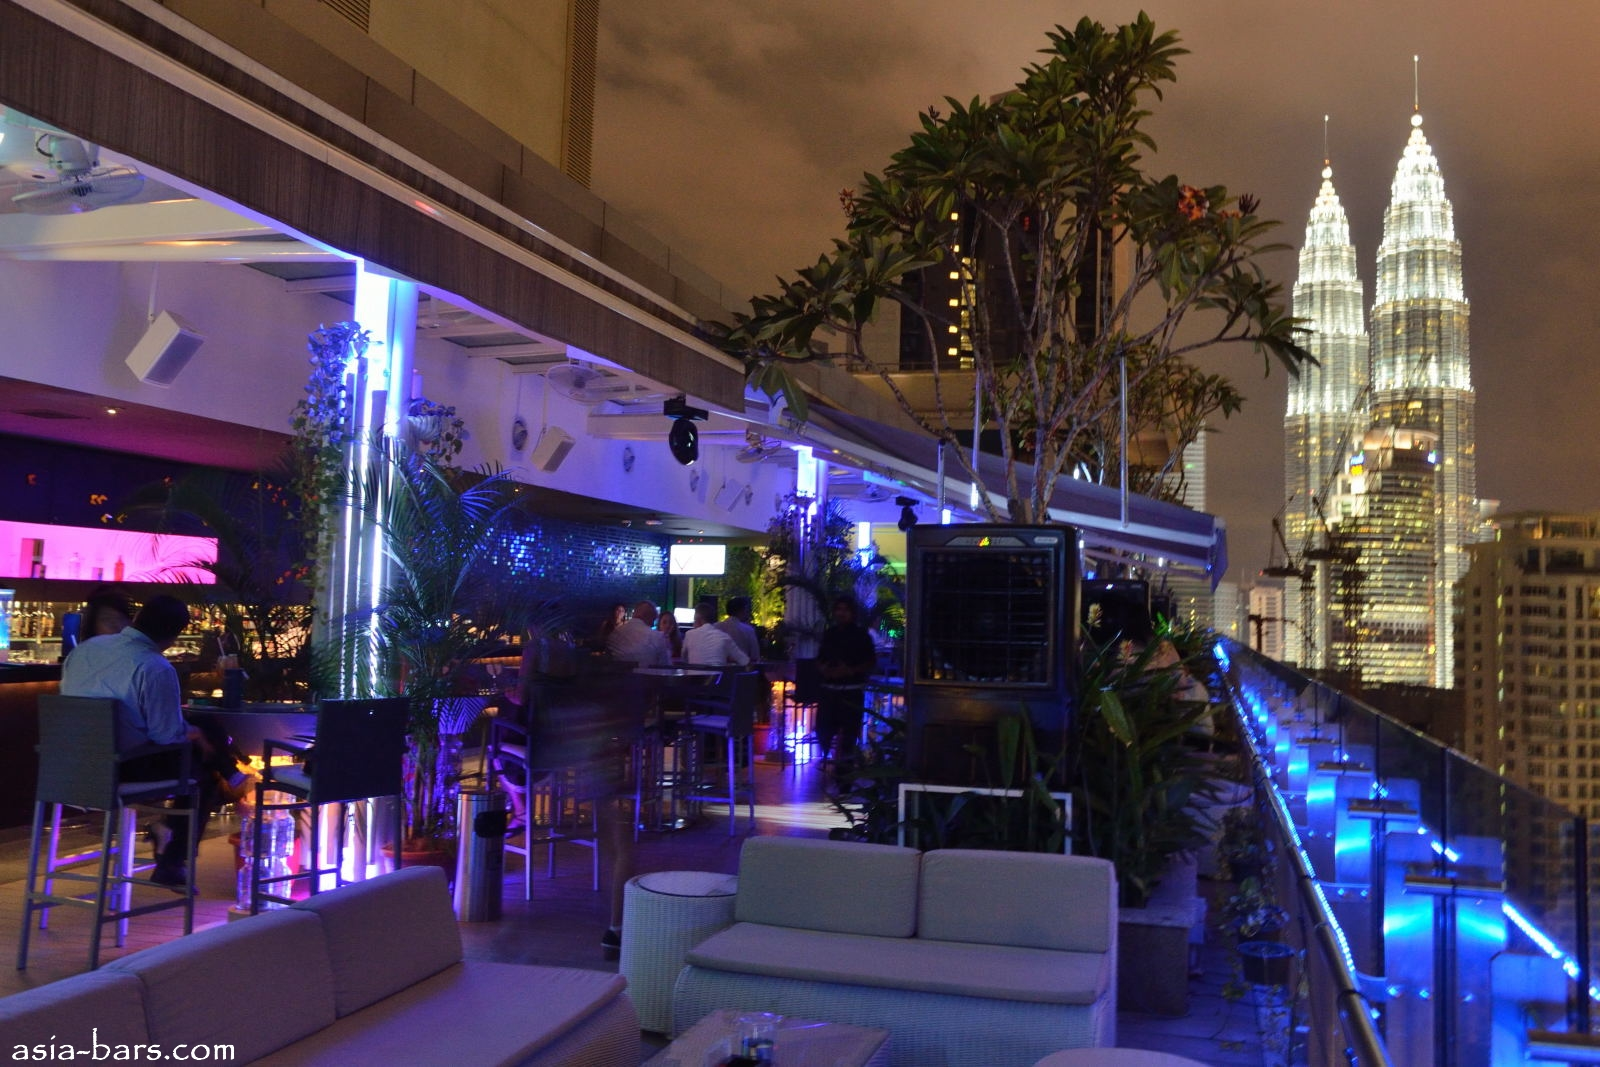 View Rooftop Bar In Kuala Lumpur Adding An Elevated